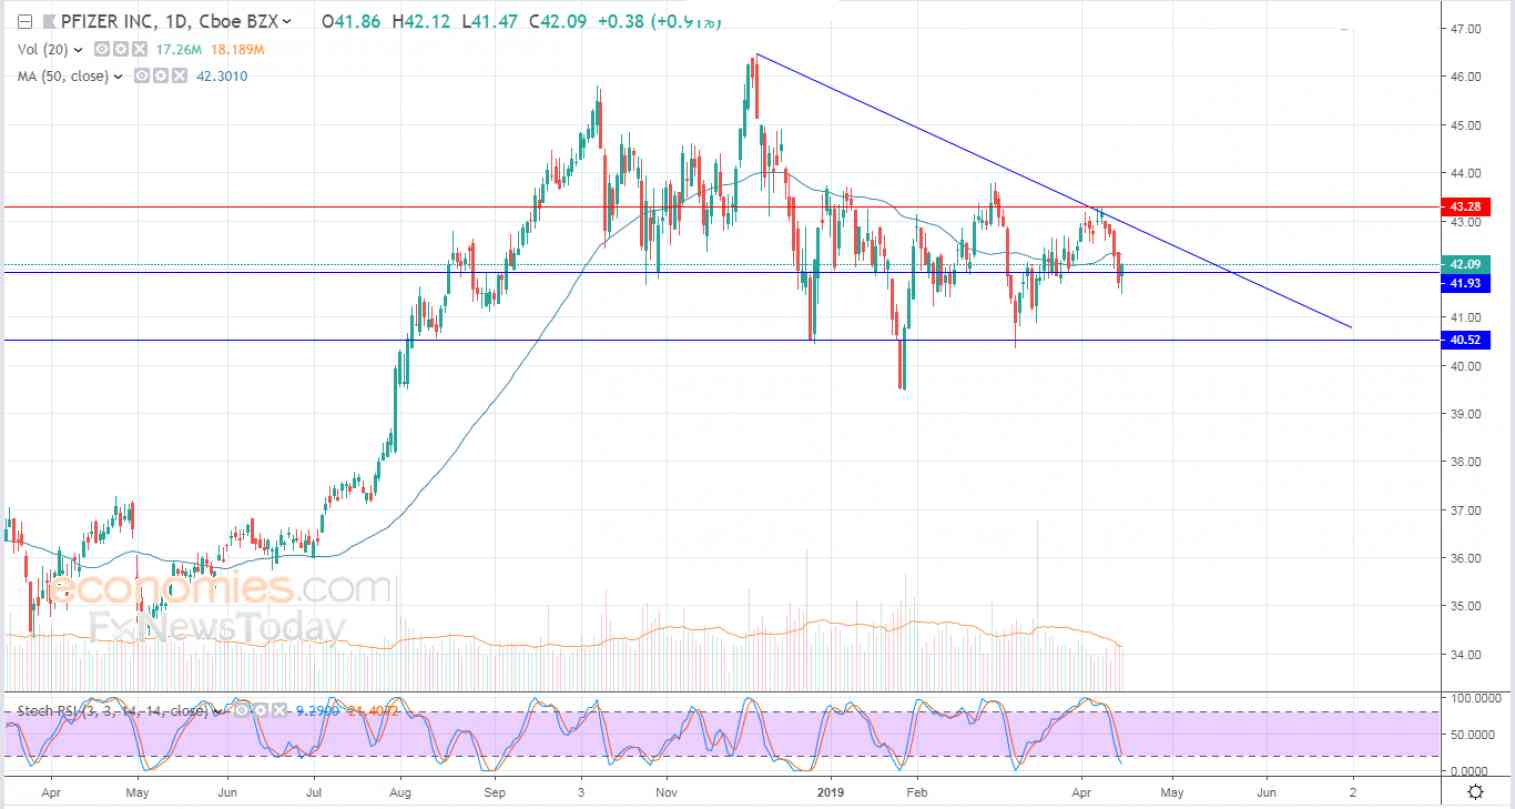 Pfizer ends cautiously higher - Analysis - 16-04-2019